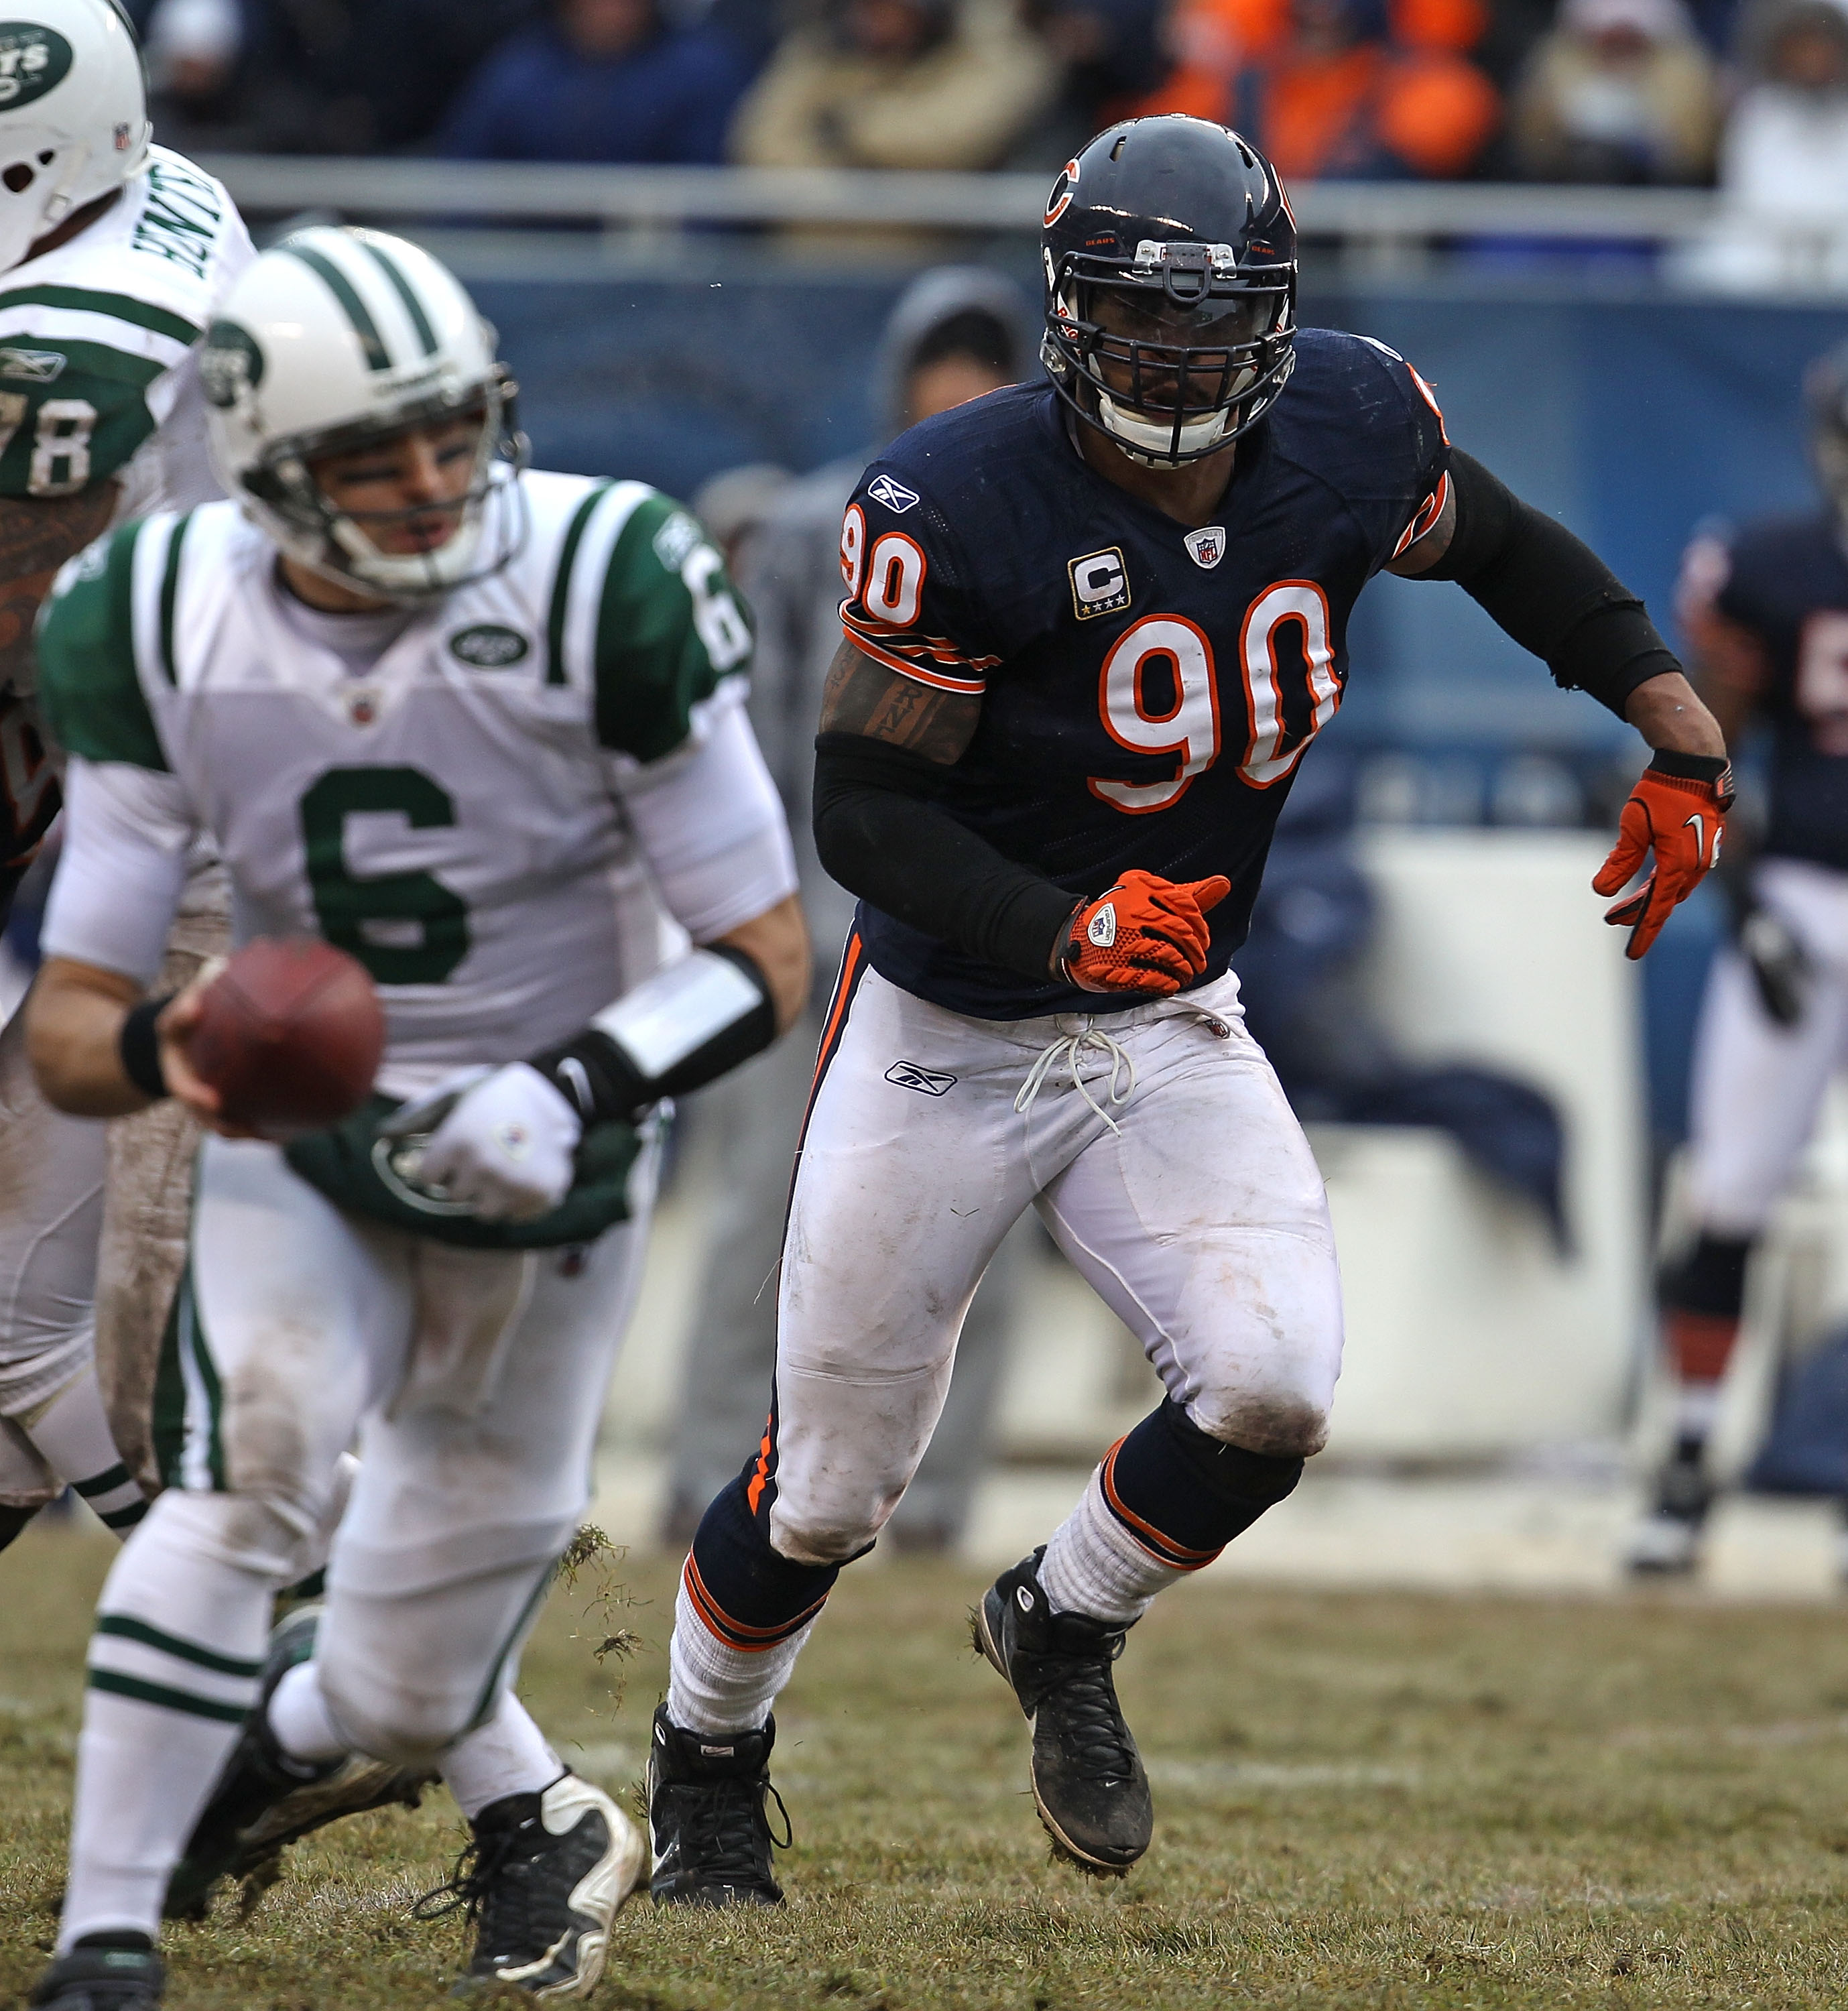 CHICAGO, IL - DECEMBER 26: Julius Peppers #90 of the Chicago Bears rushes against Mark Sanchez #6 of the New York Jets at Soldier Field on December 26, 2010 in Chicago, Illinois. The Bears defeated the Jets 38-34. (Photo by Jonathan Daniel/Getty Images)